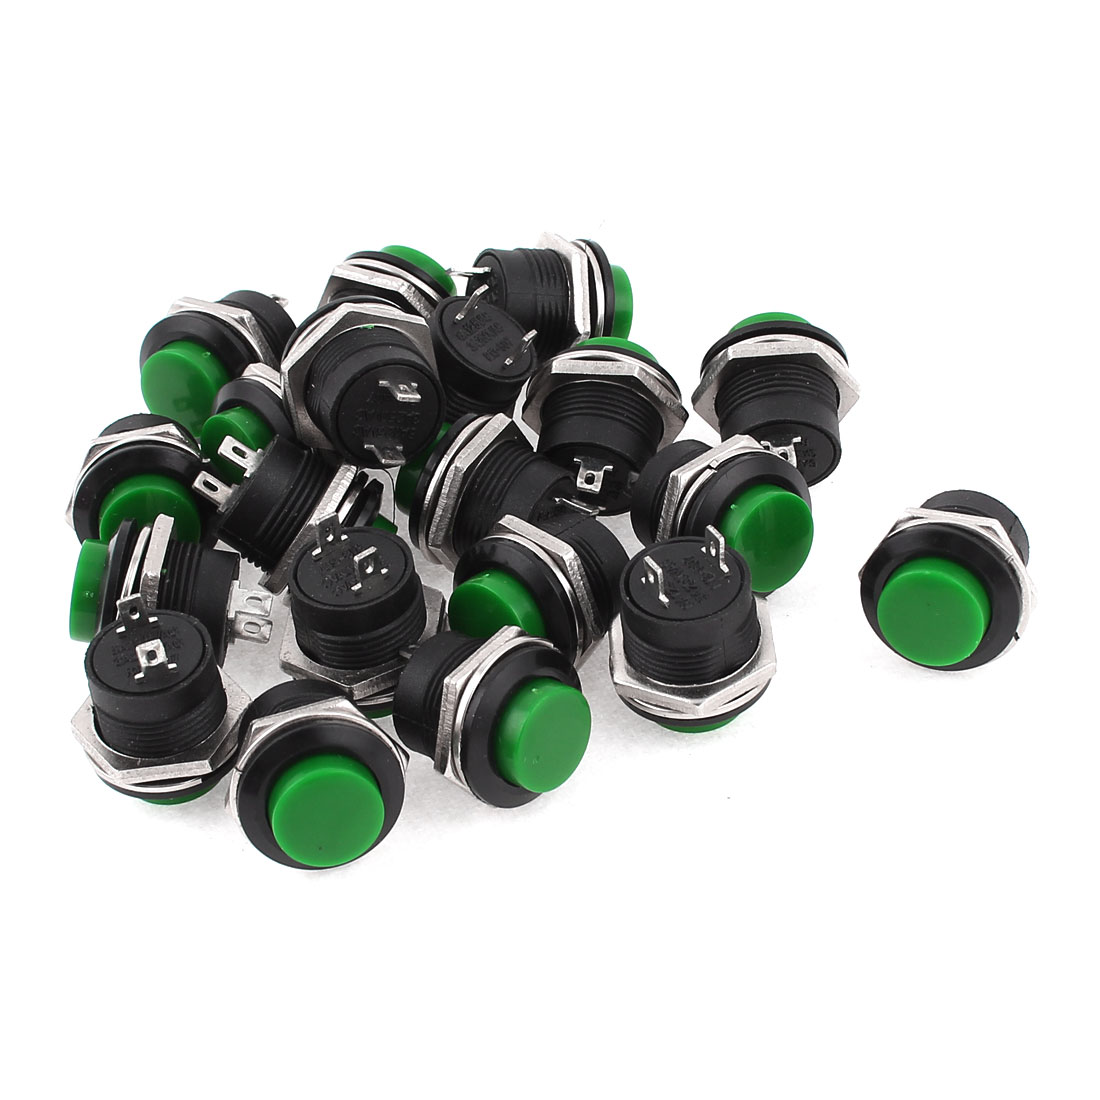 20 Pcs R13-507 2 Terminals SPST Momentary Green Push Button Switch AC 125V/6A 250V/3A